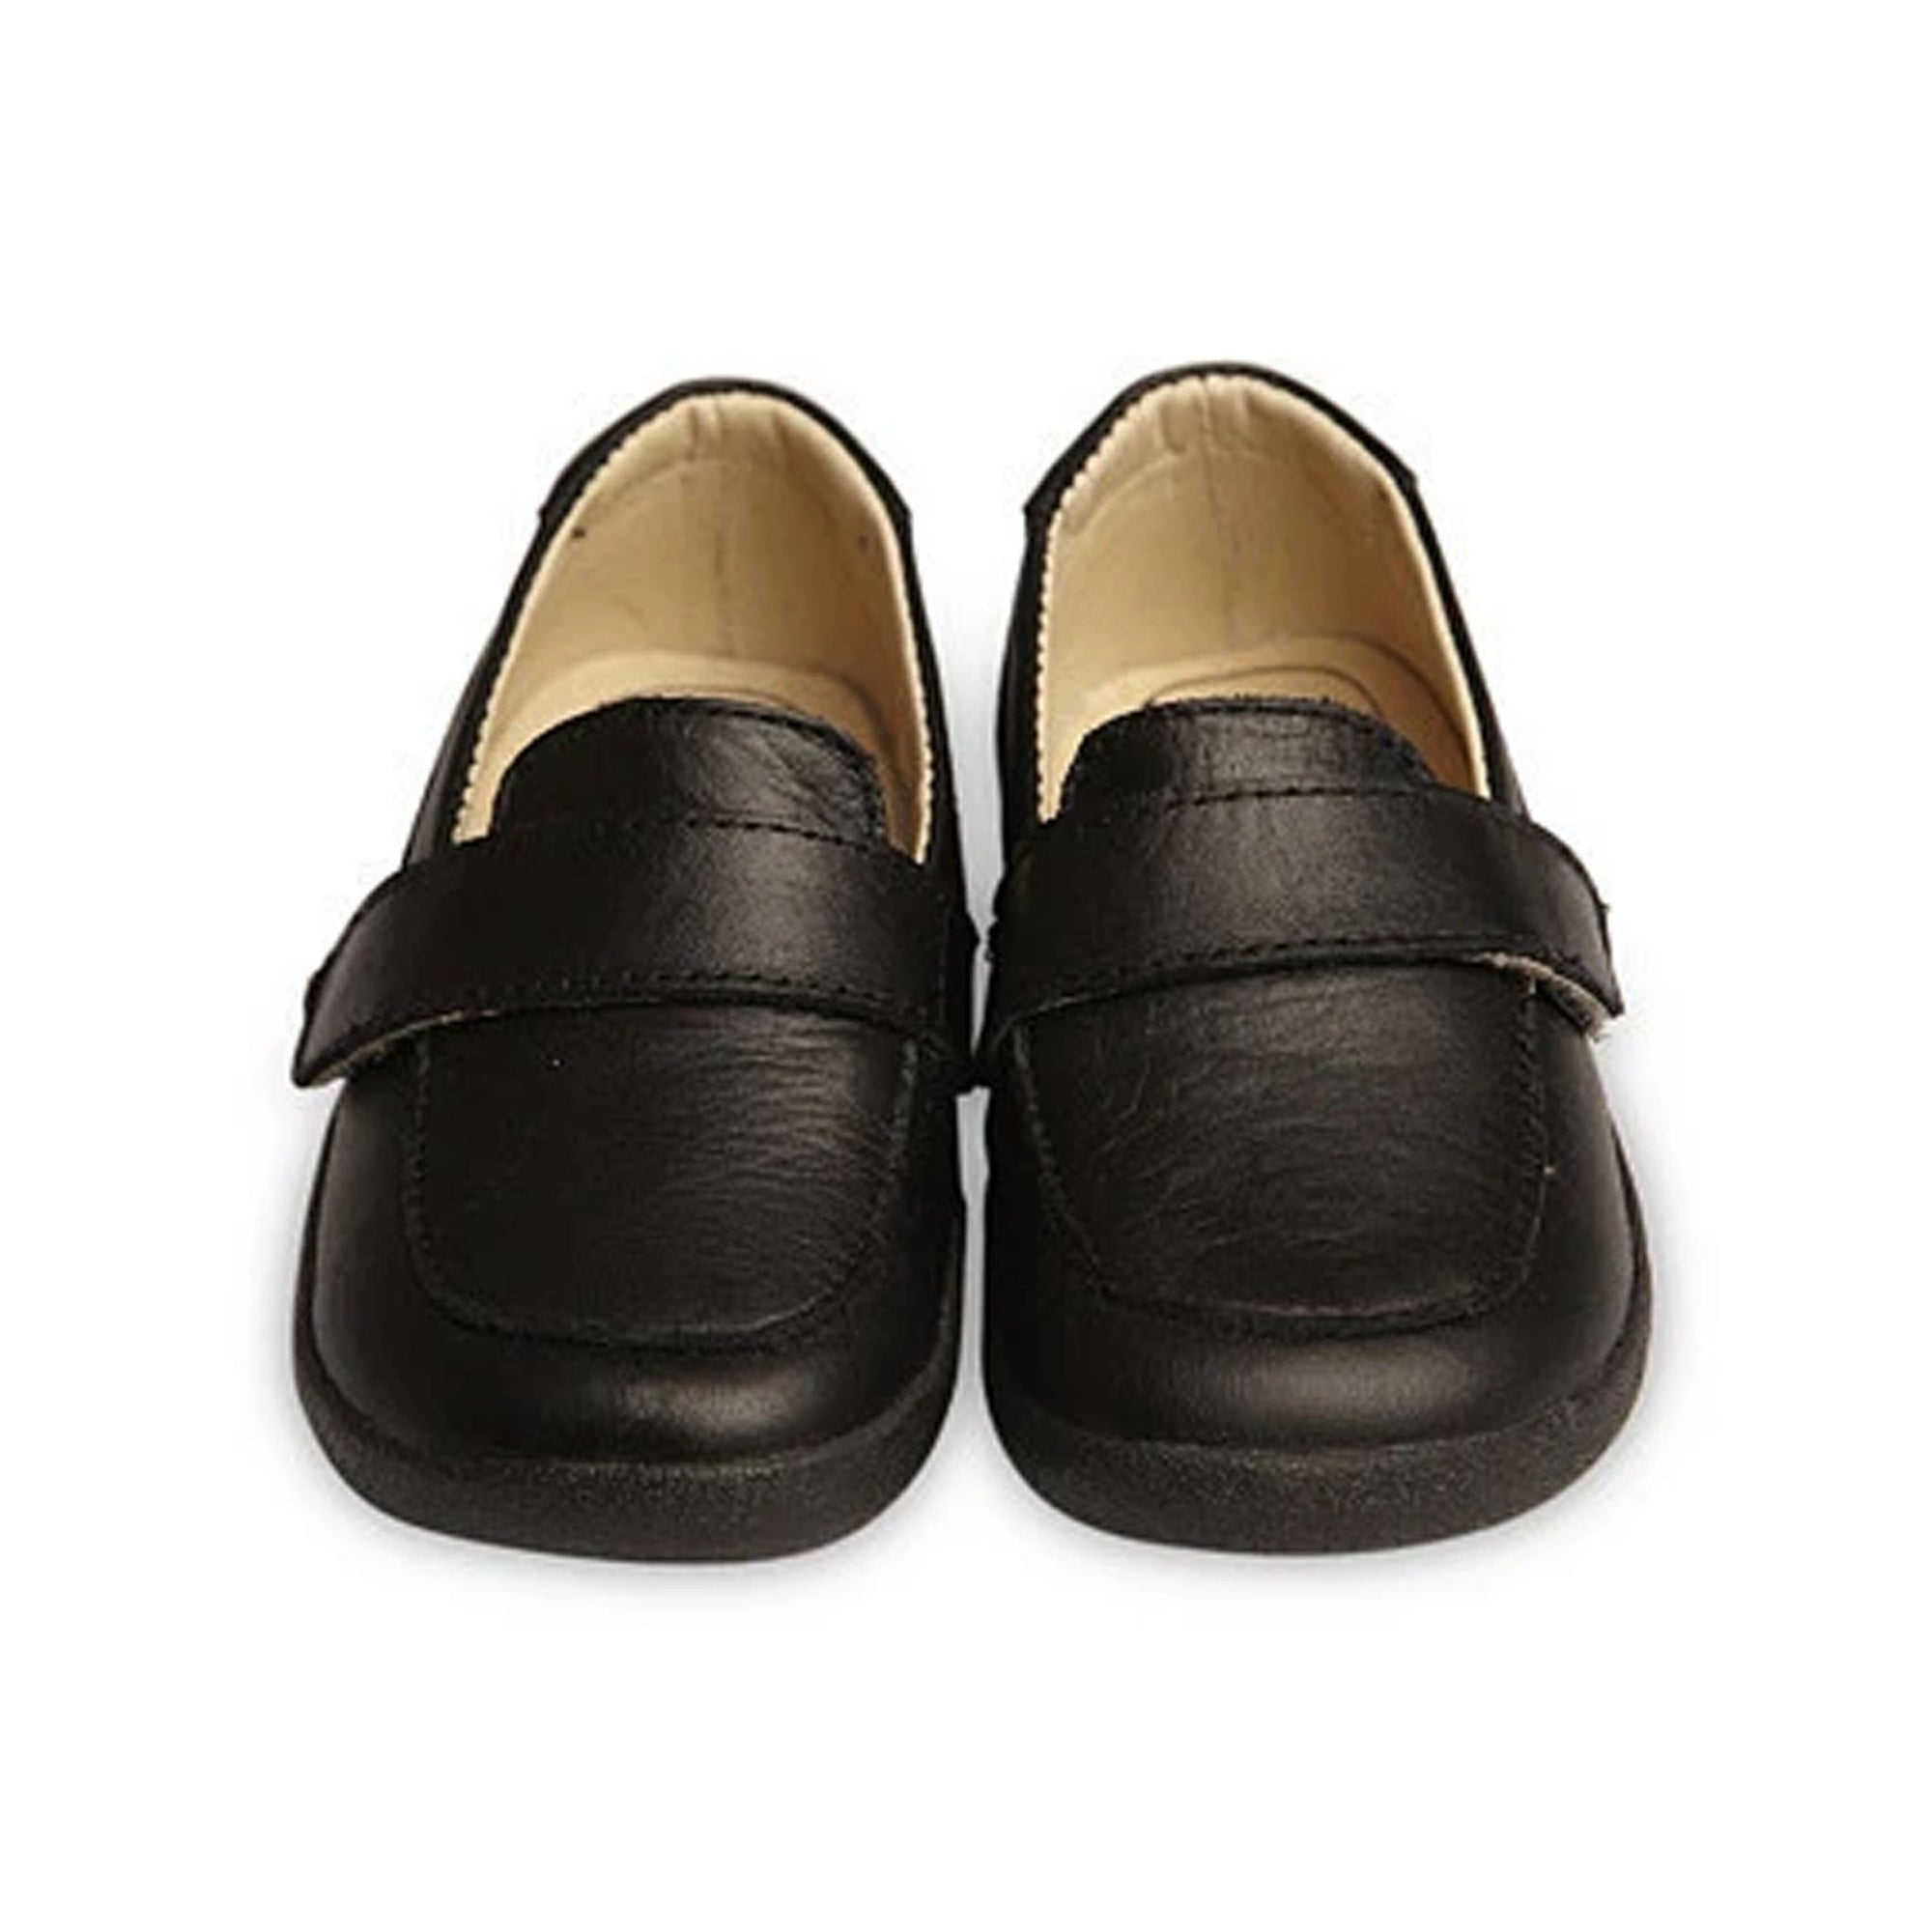 Old Soles Black Business Shoe